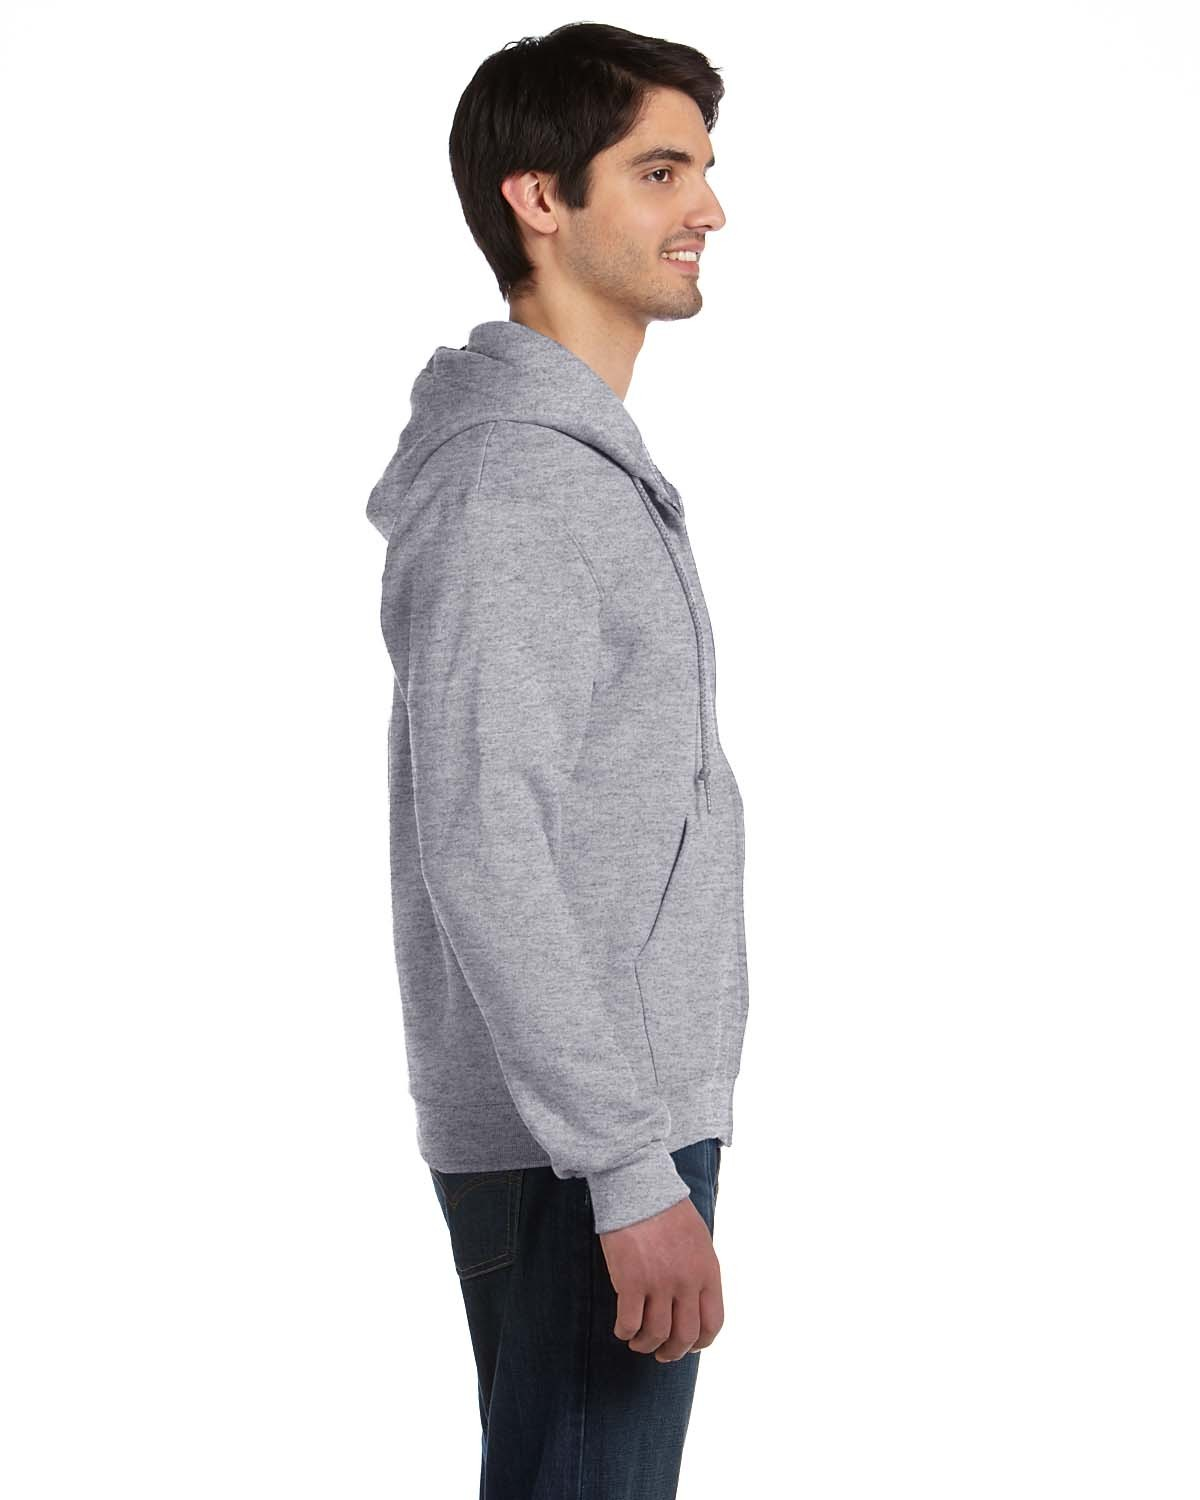 82230 Fruit of the Loom ATHLETIC HEATHER